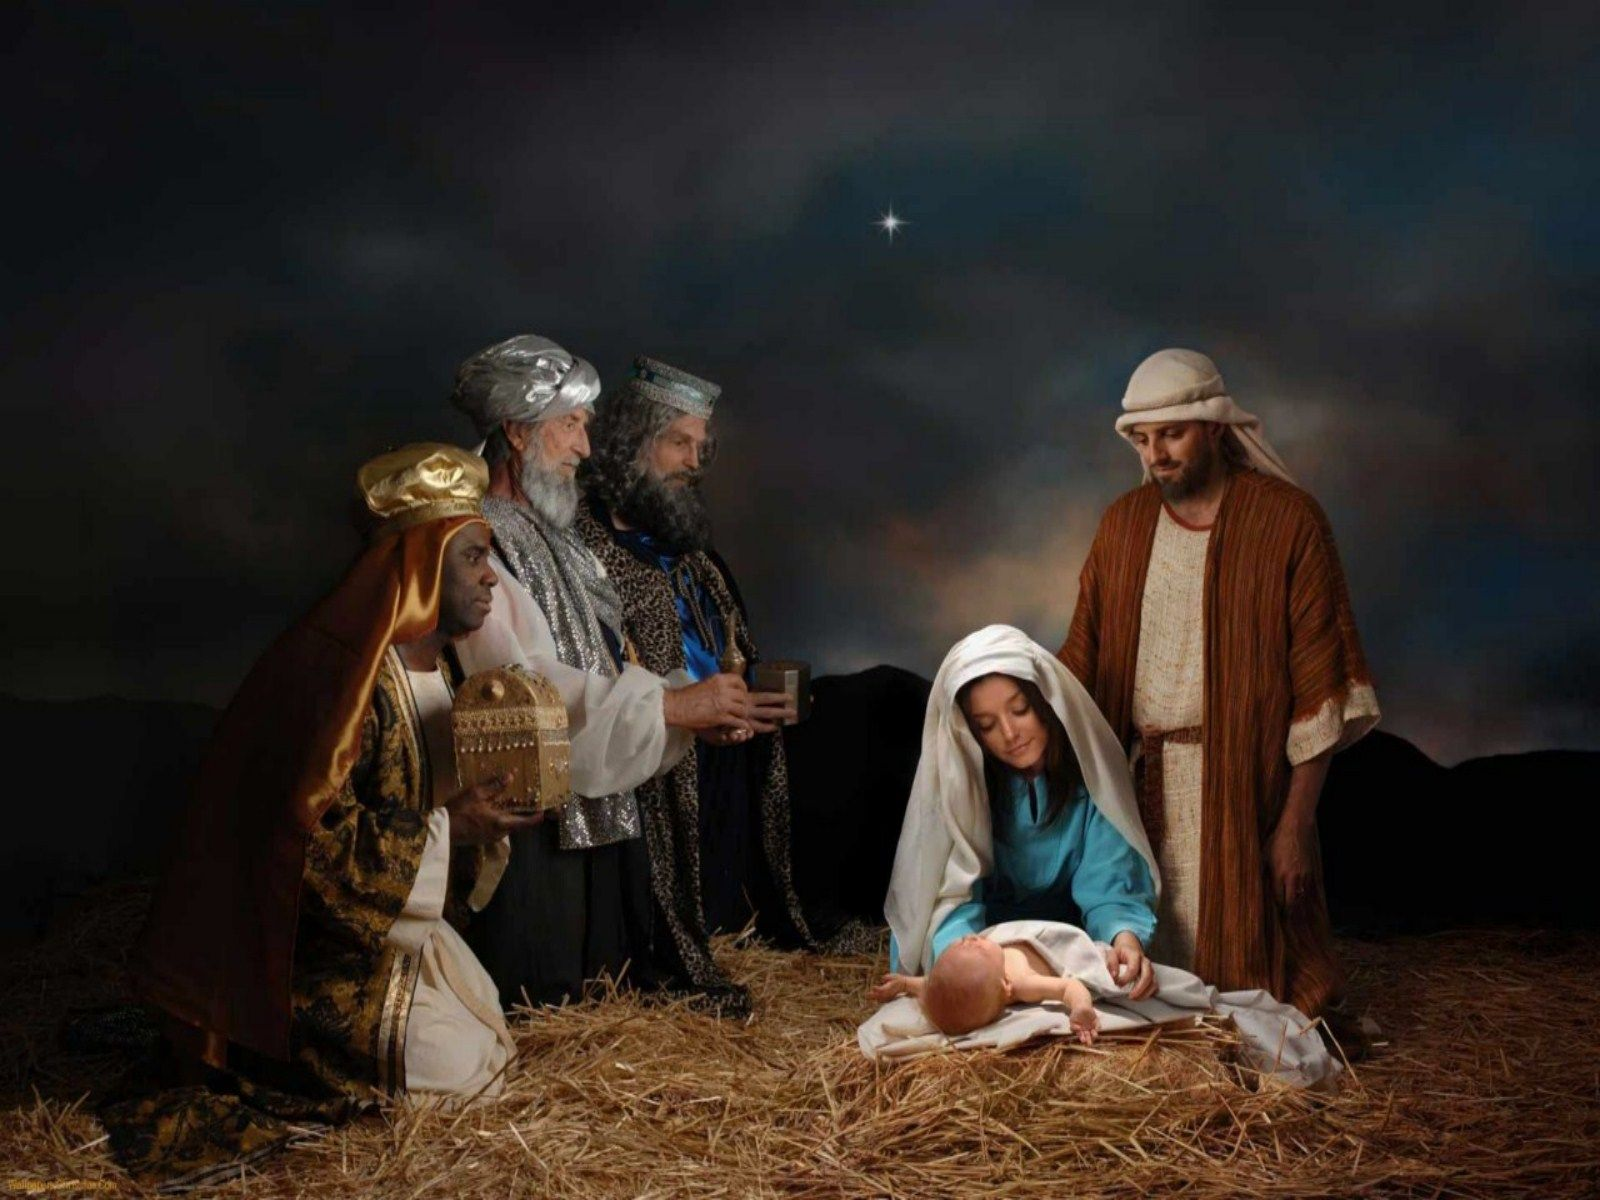 Free Pictures of Nativity Scenes | Free Download HD Christmas ...